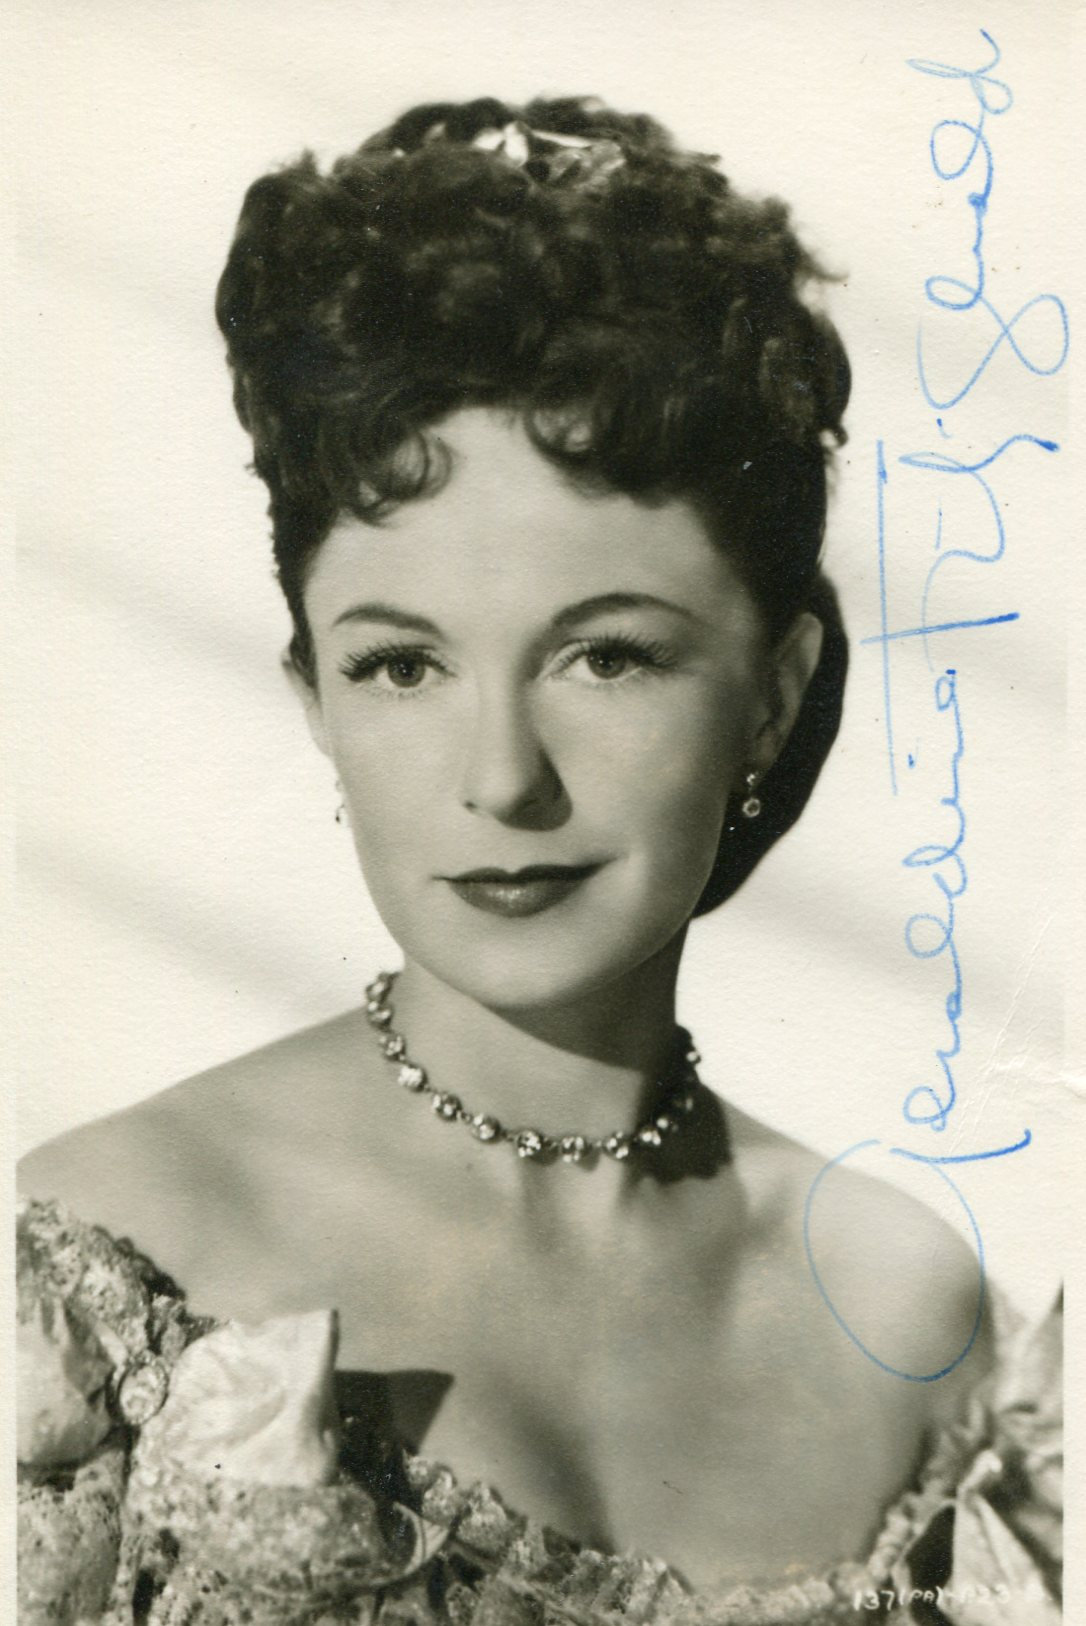 geraldine fitzgerald obituarygeraldine fitzgerald actress, geraldine fitzgerald imdb, geraldine fitzgerald movies, geraldine fitzgerald photos, geraldine fitzgerald wuthering heights, geraldine fitzgerald facebook, geraldine fitzgerald our town, geraldine fitzgerald bio, geraldine fitzgerald poltergeist, geraldine fitzgerald british actress, geraldine fitzgerald and orson welles, geraldine fitzgerald obituary, geraldine fitzgerald alfred hitchcock, geraldine fitzgerald chalk, geraldine fitzgerald uk, geraldine fitzgerald bertram allen, geraldine fitzgerald radio 4, geraldine fitzgerald journalist, geraldine fitzgerald dirty rotten scoundrels, geraldine fitzgerald grave